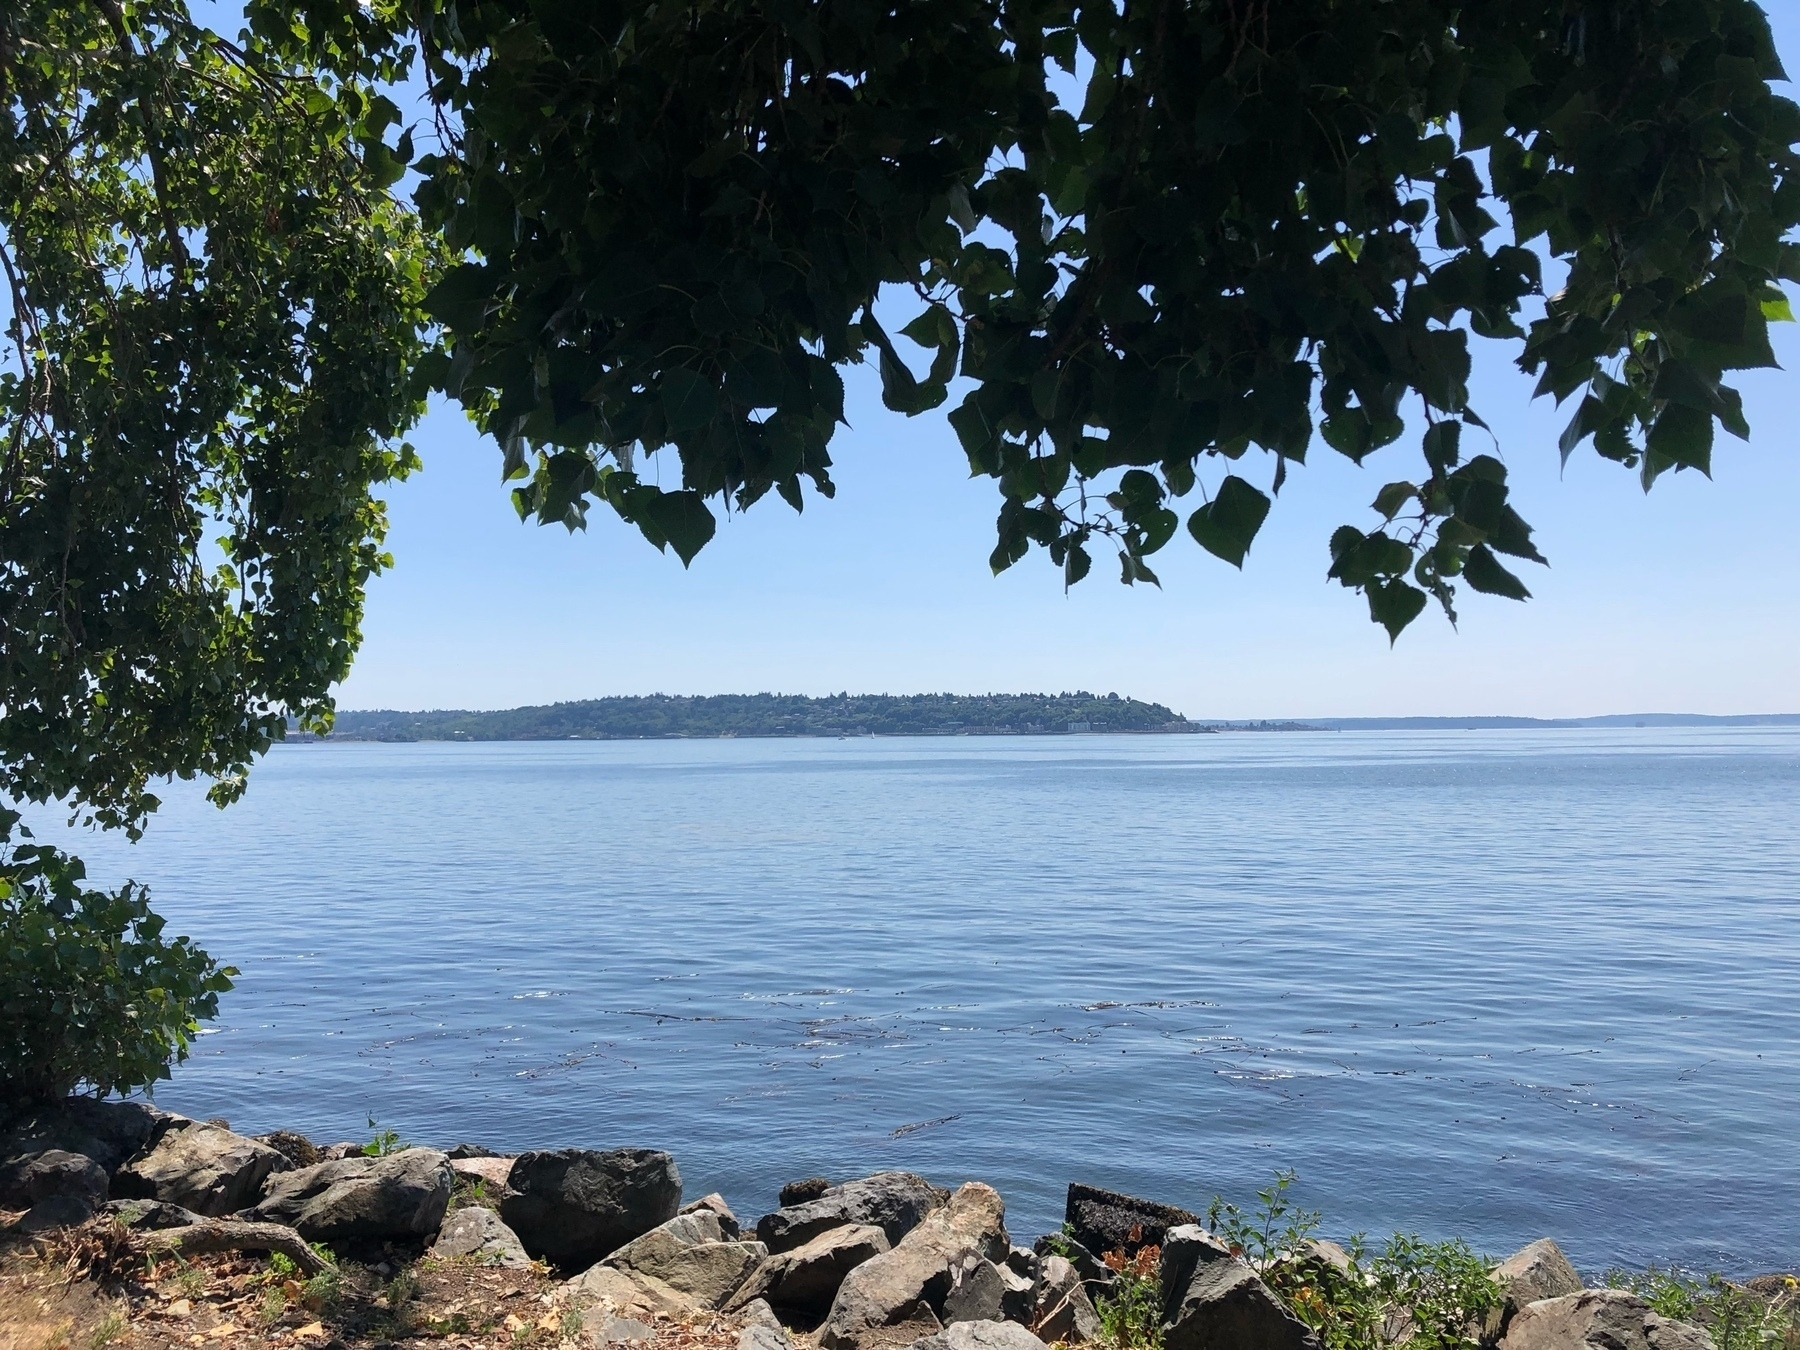 The blue water of Elliott Bay beneath drooping leafy tree branches.